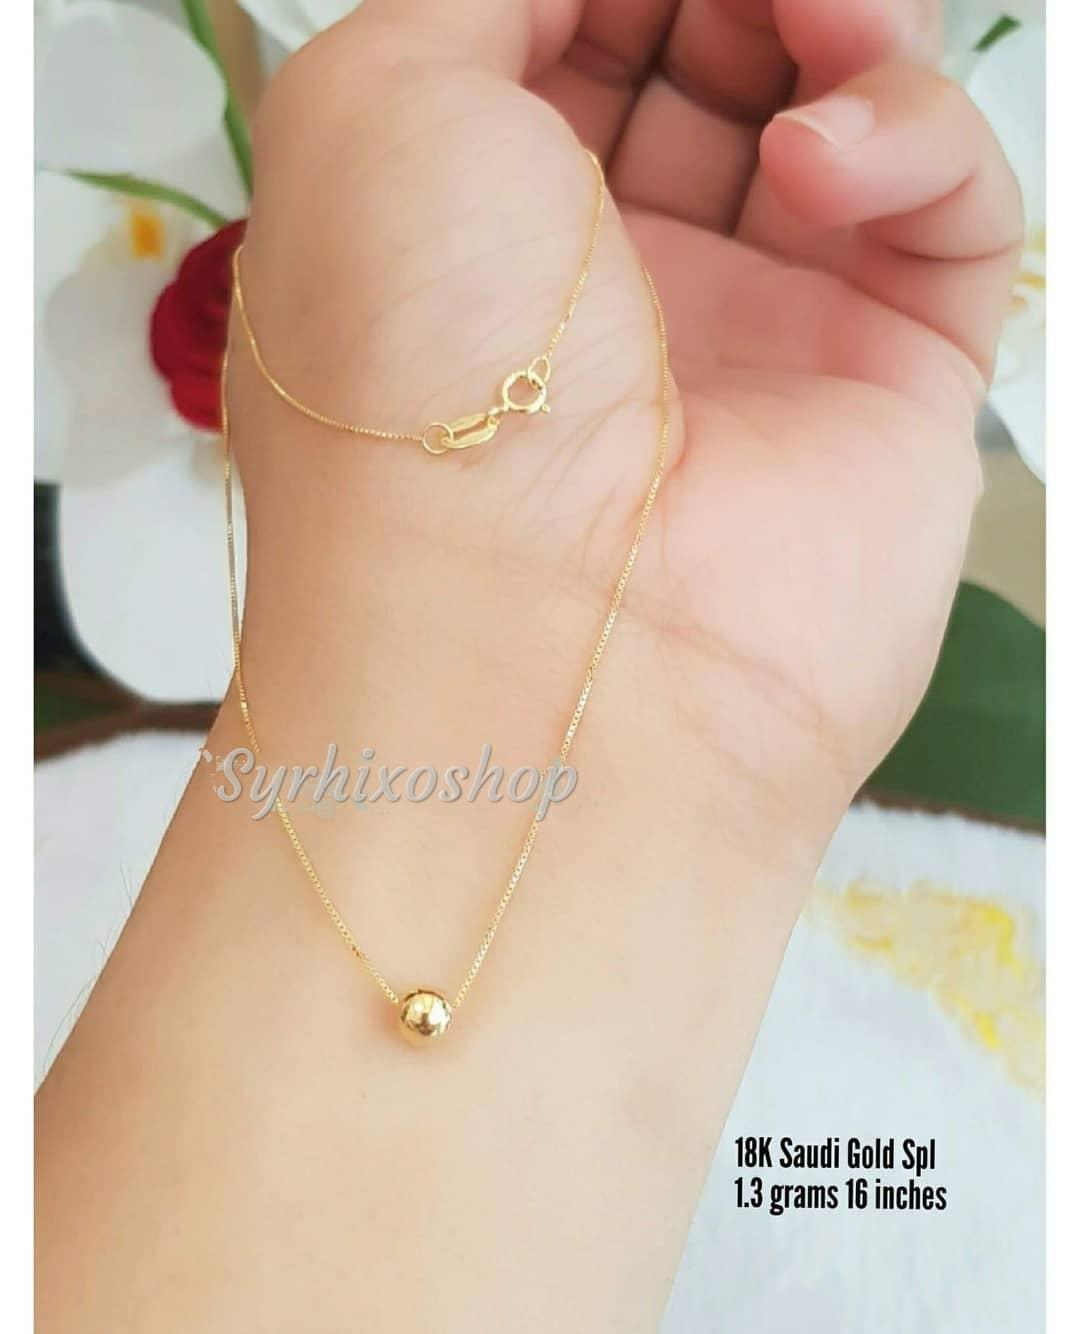 1bafd7089de654 Gold Jewelry for sale - Pure Gold Jewelry online brands, prices ...